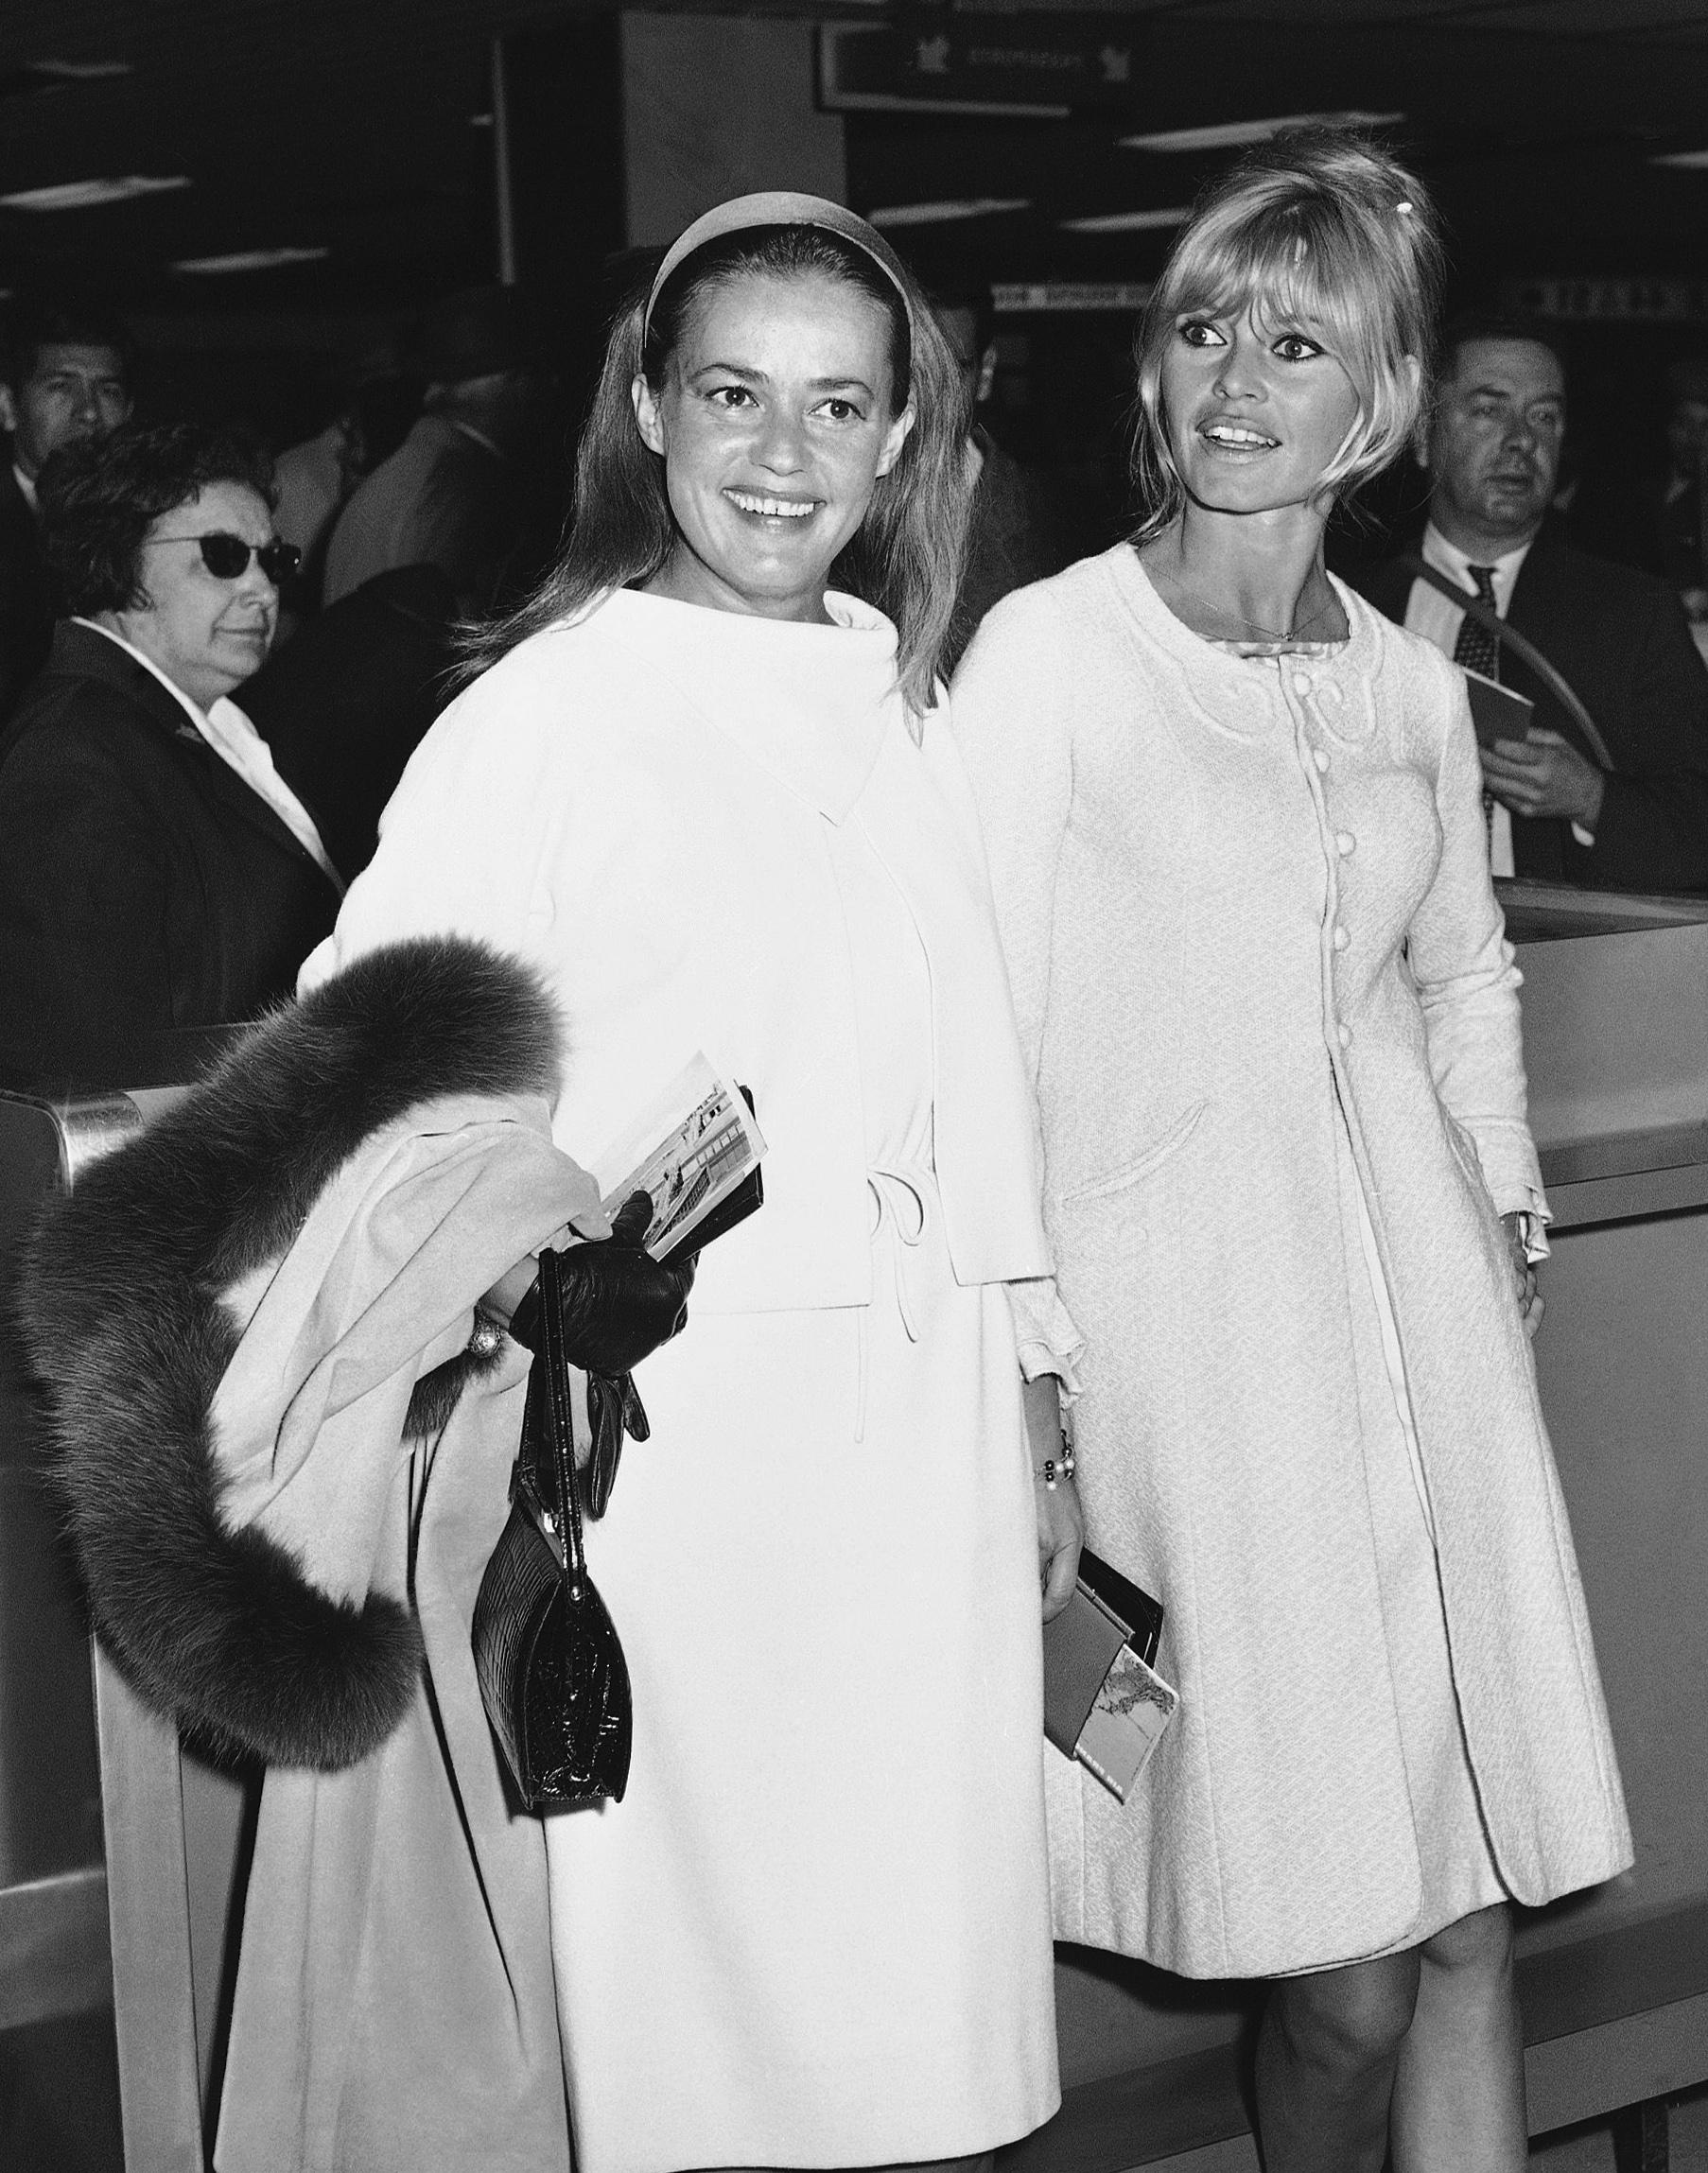 FILE - In this May 26, 1965 file photo Jeanne Moreau, left, and Brigitte Bardot are photographed as they arrive at Orly airport in Paris. French actress Jeanne Moreau, whose seven-decade career included work with Francois Truffaut, Orson Welles, Wim Wenders and other acclaimed directors, has died aged 89 it was announced Monday July 31, 2017. (AP Photo/File)